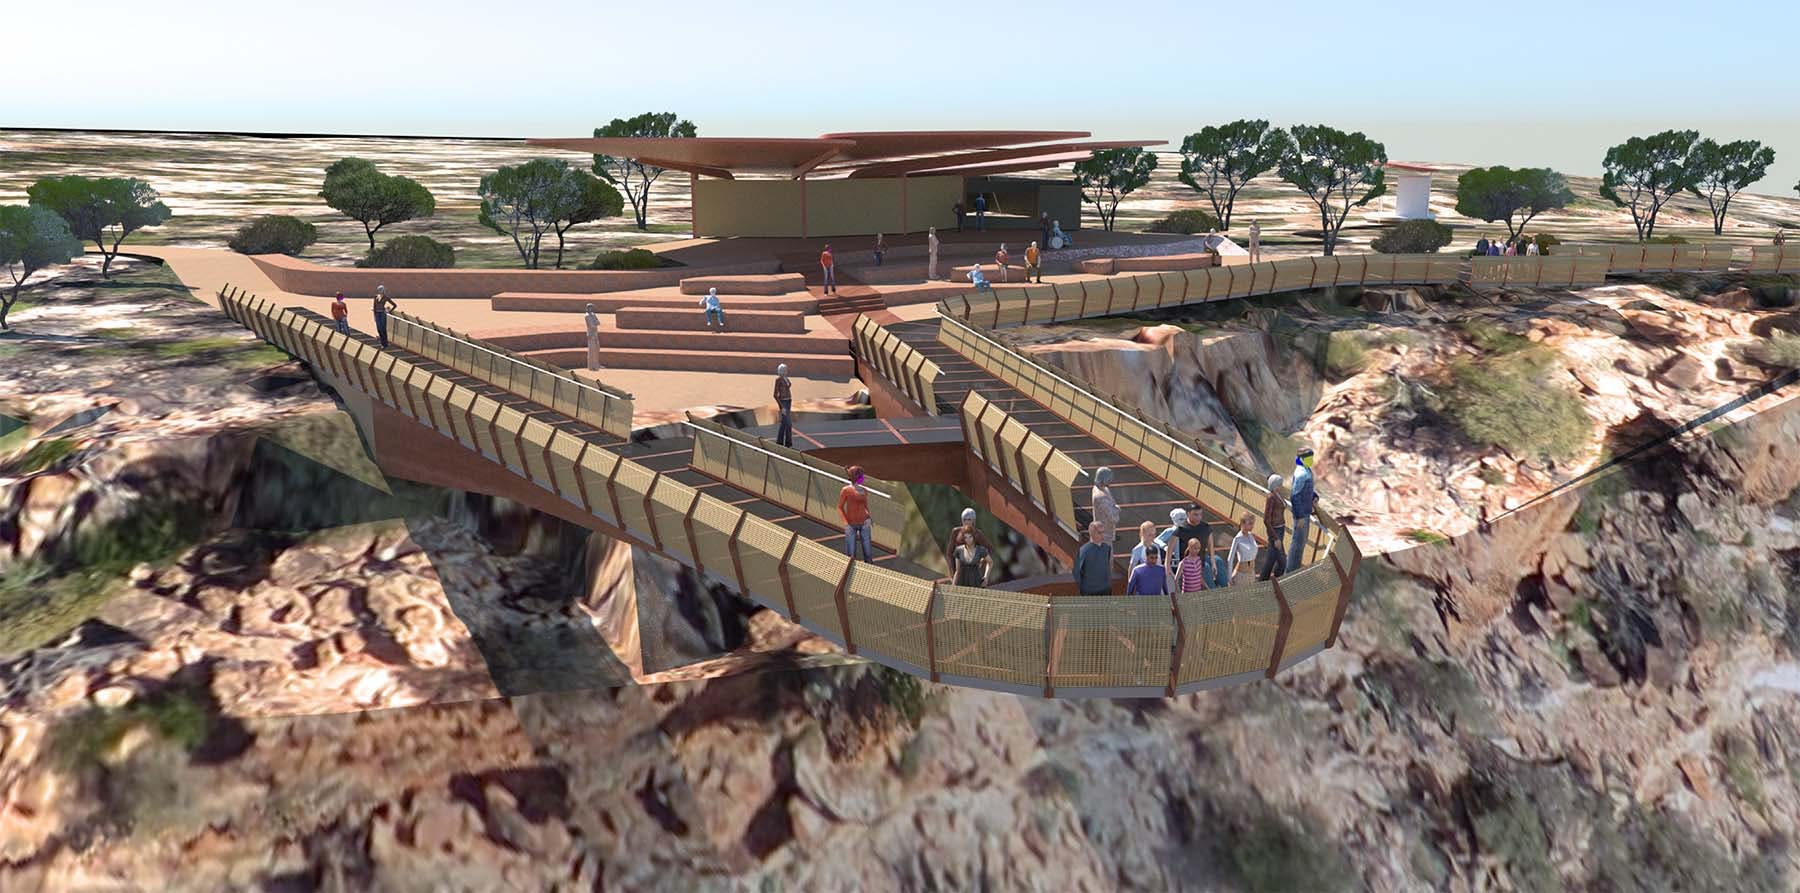 Kalbarri Attractions will be the Kalbarri Skywalk due for completion in 2018 in the Kalbarri National Park